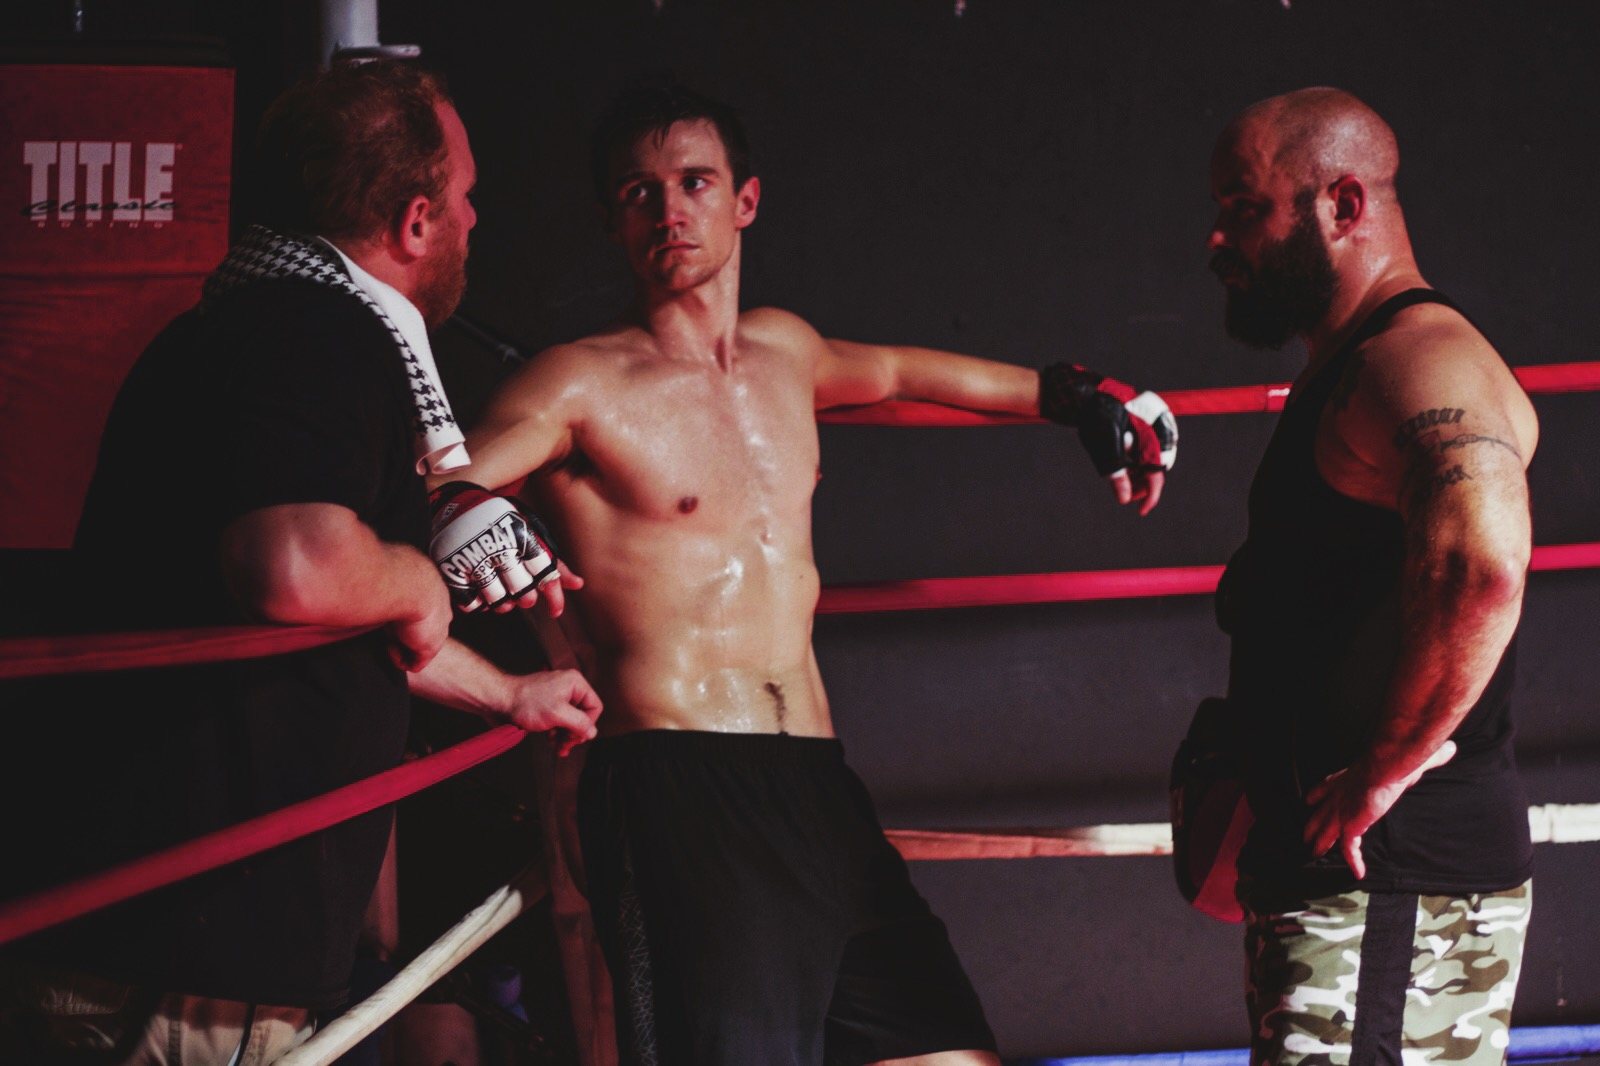 Rough And Tumble >> 'The Fight Within' Hits Theaters Aug. 12 in a Faith-Film Cage Match from GVN Releasing